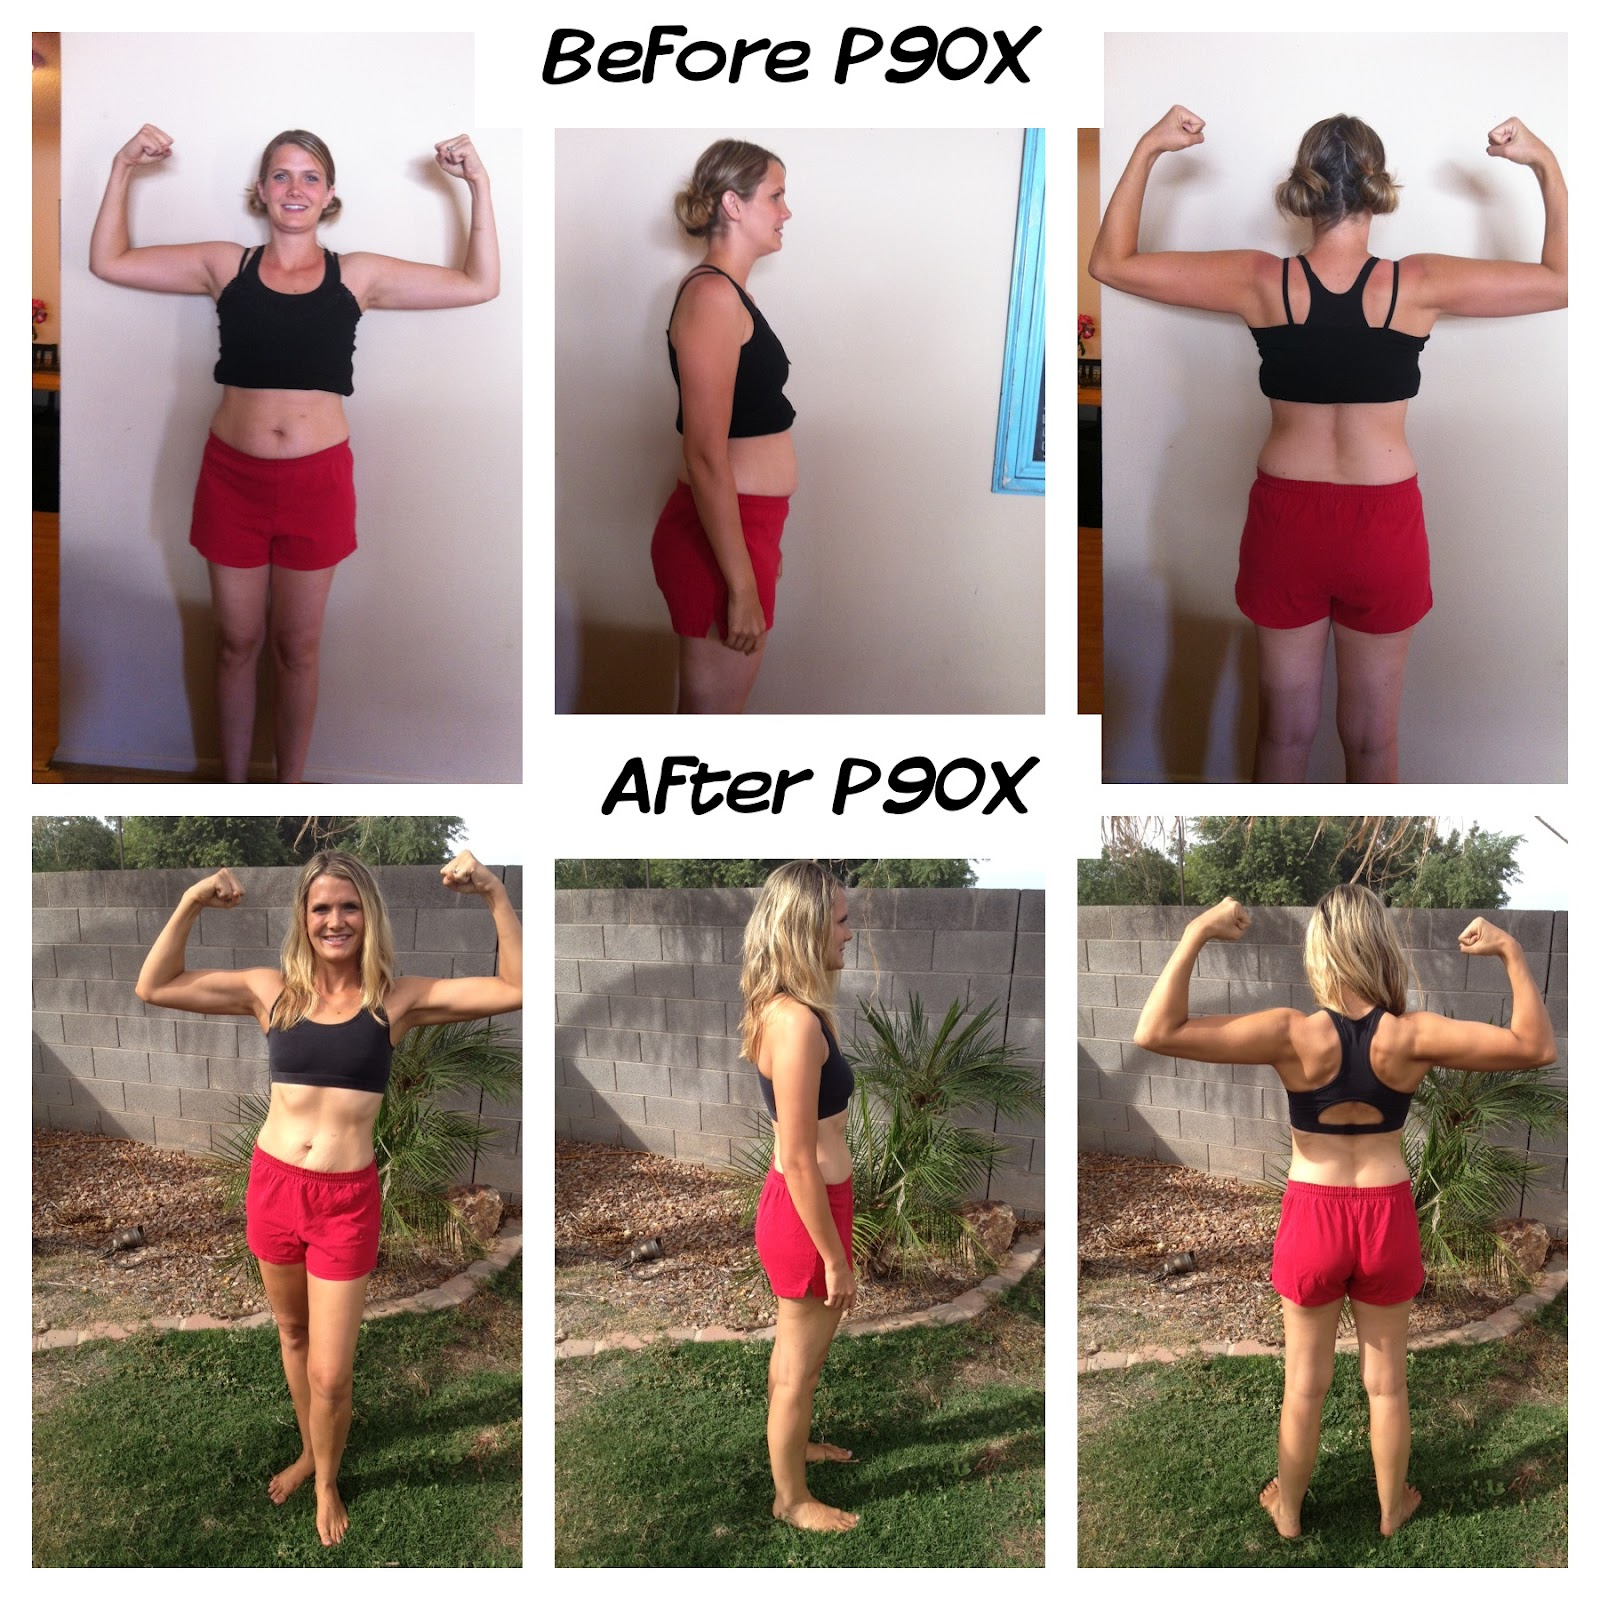 Lady Gaga: p90x before and after girls |P90x Before And After Obese Women